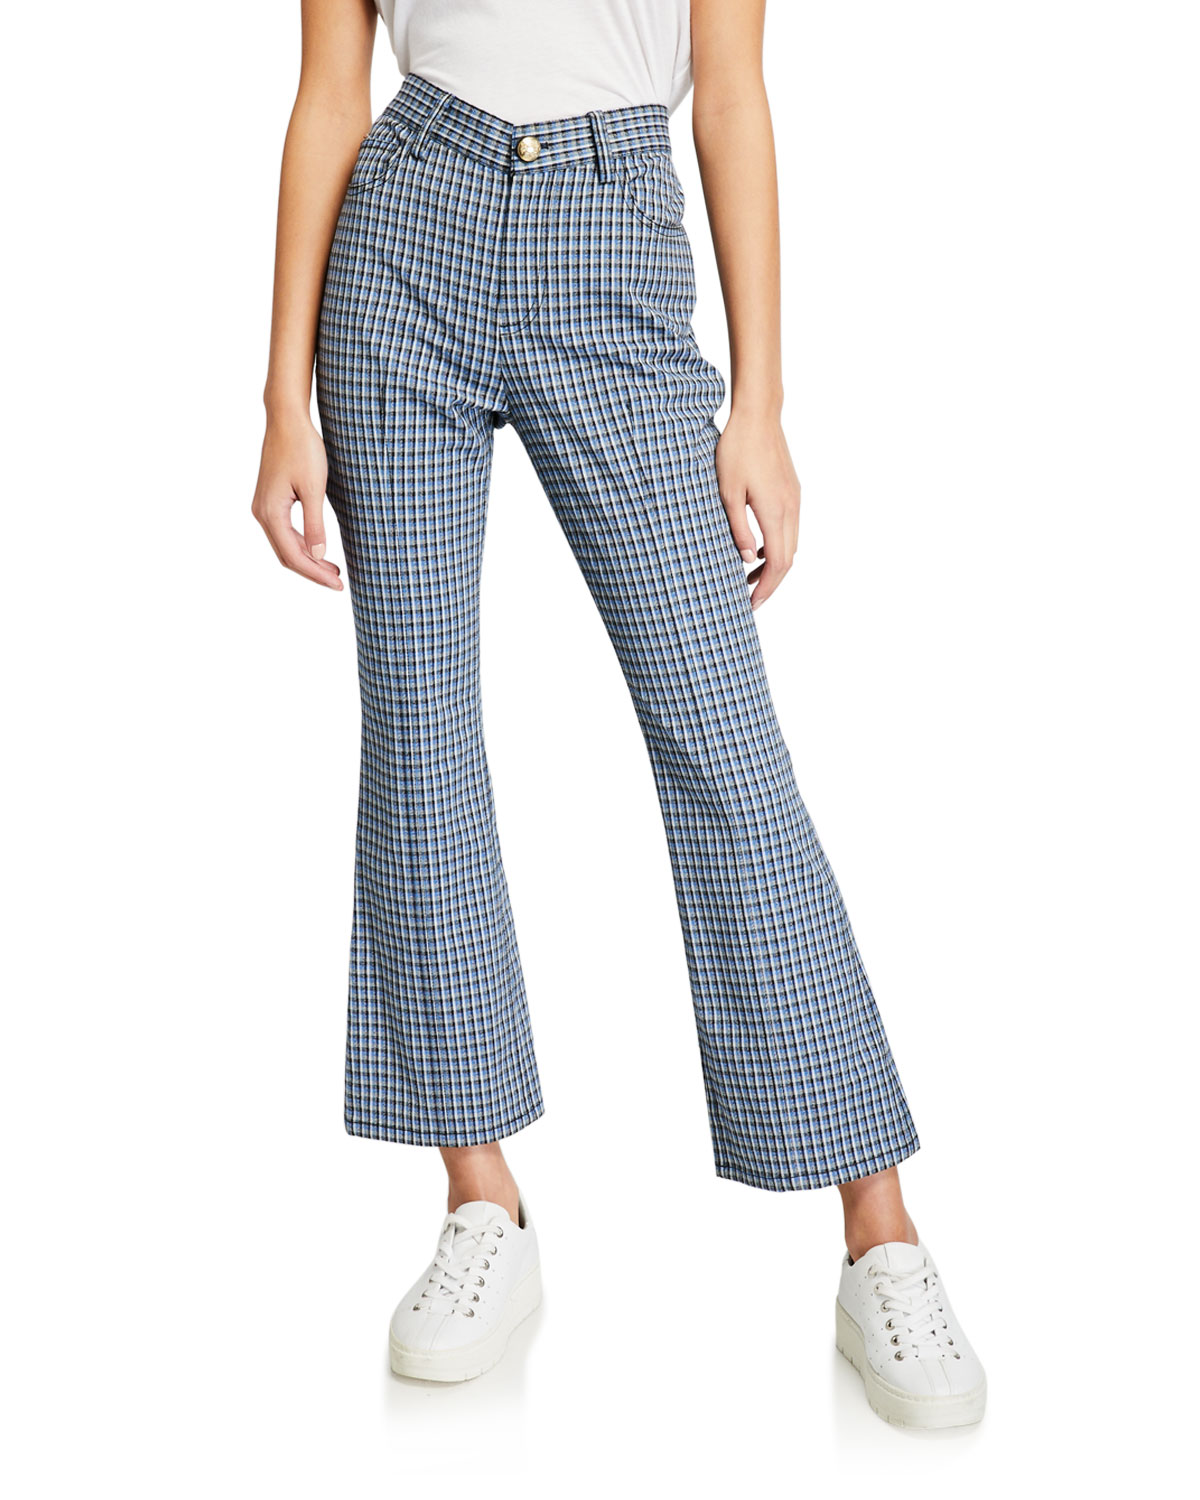 Derek Lam 10 Crosby Jeans CROPPED MOULINE CHECK FLARE JEAN TROUSERS